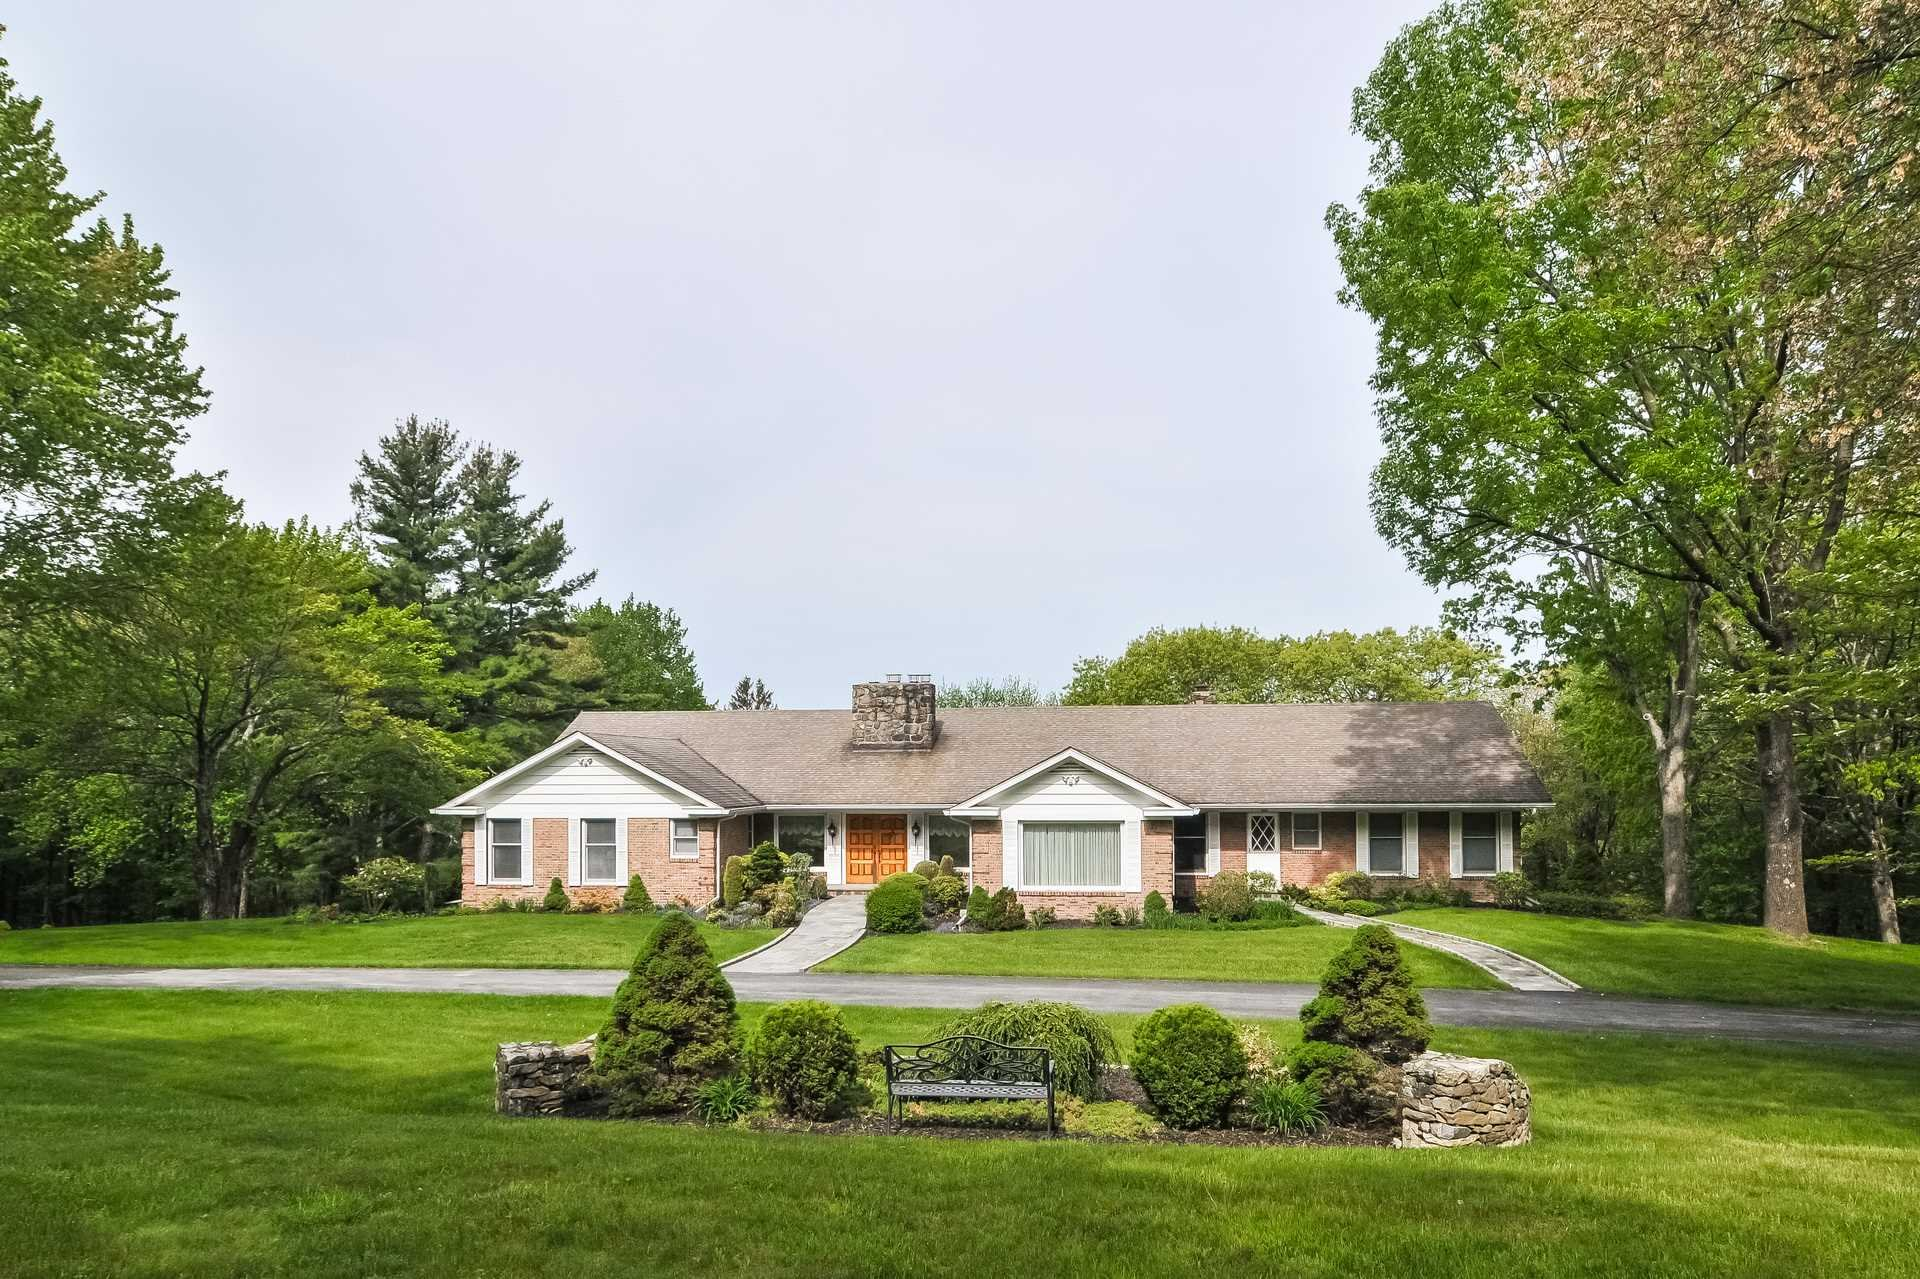 Single Family Home for Sale at 527 NORTH QUAKER HILL 527 NORTH QUAKER HILL Pawling, New York 12564 United States